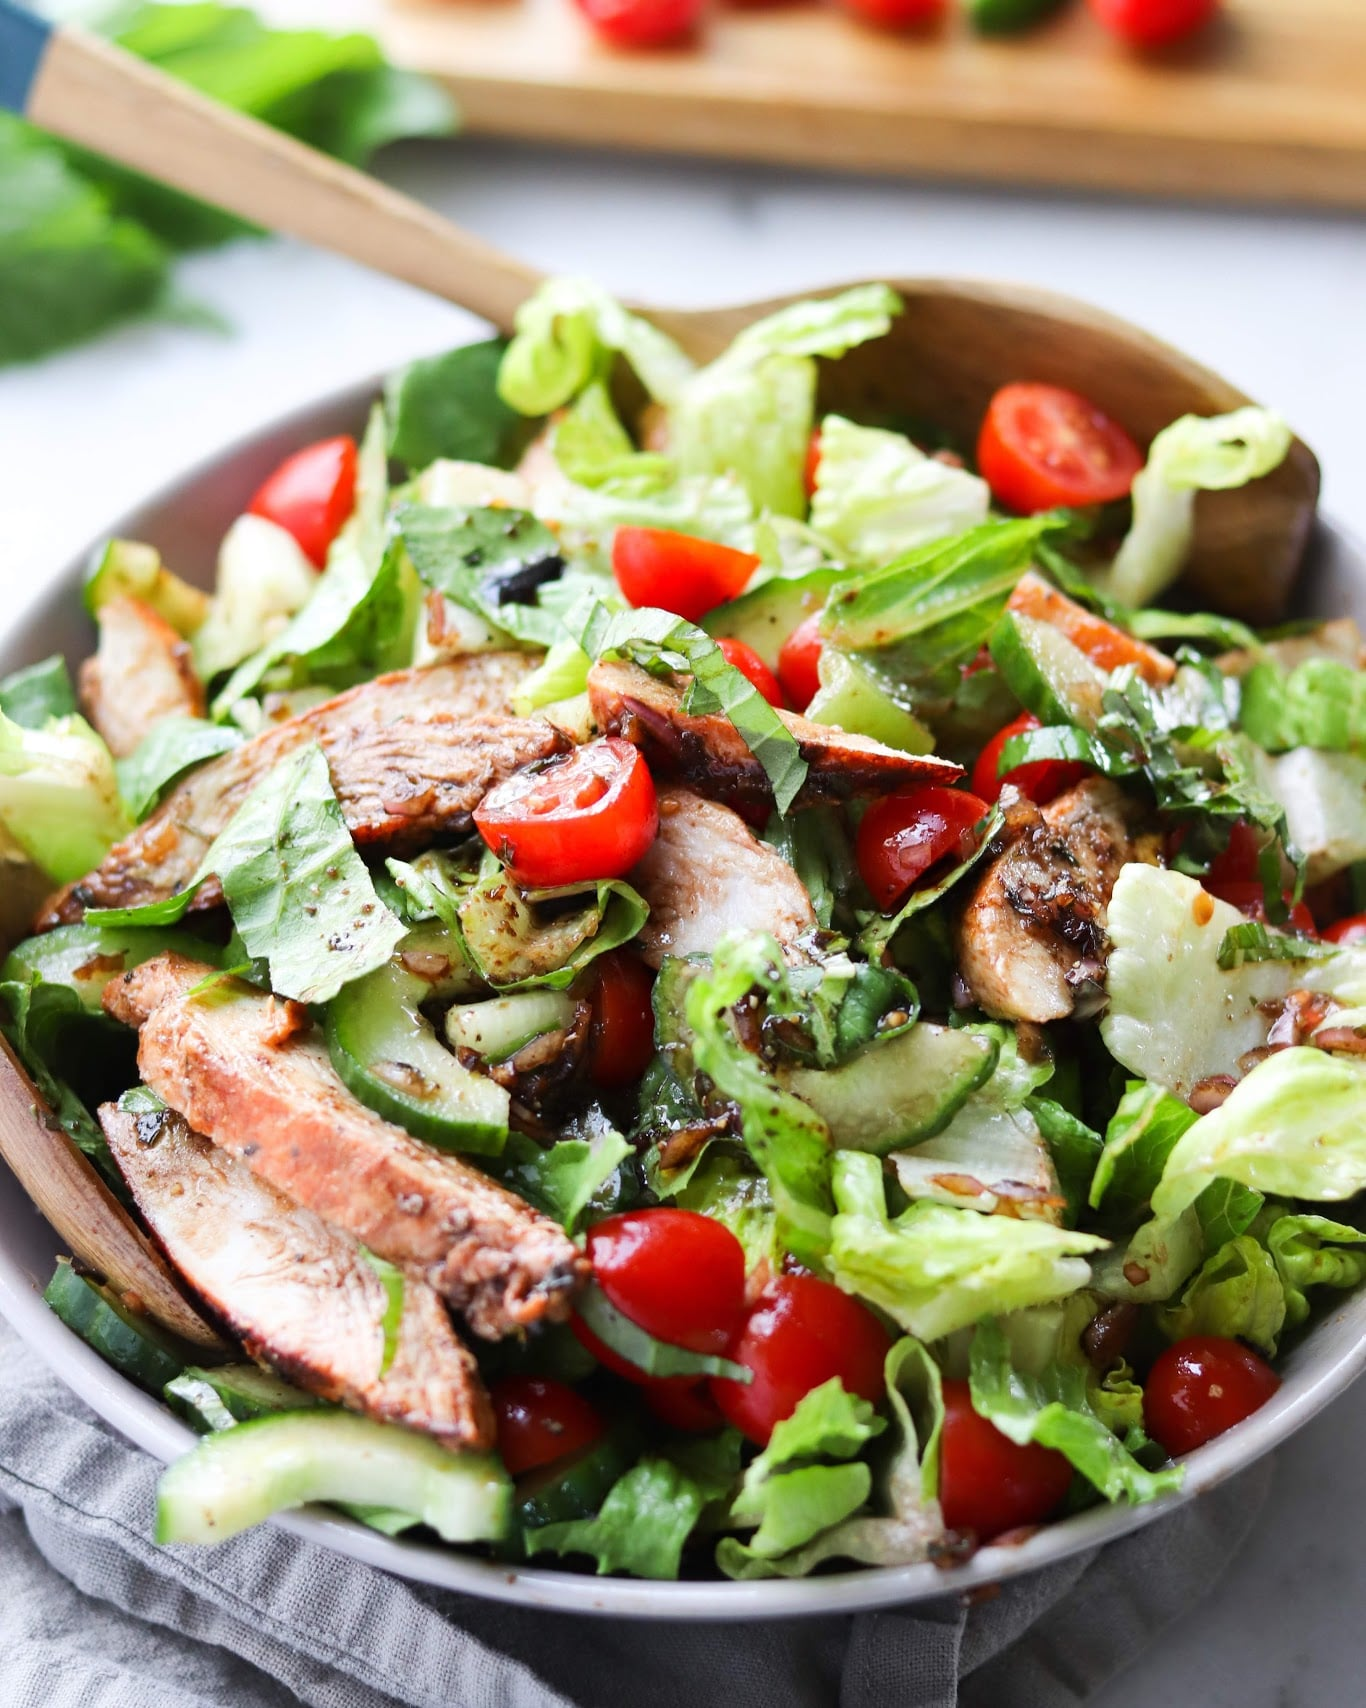 The salad is dressed with the balsamic shallot vinaigrette and all the ingredients are tossed together.